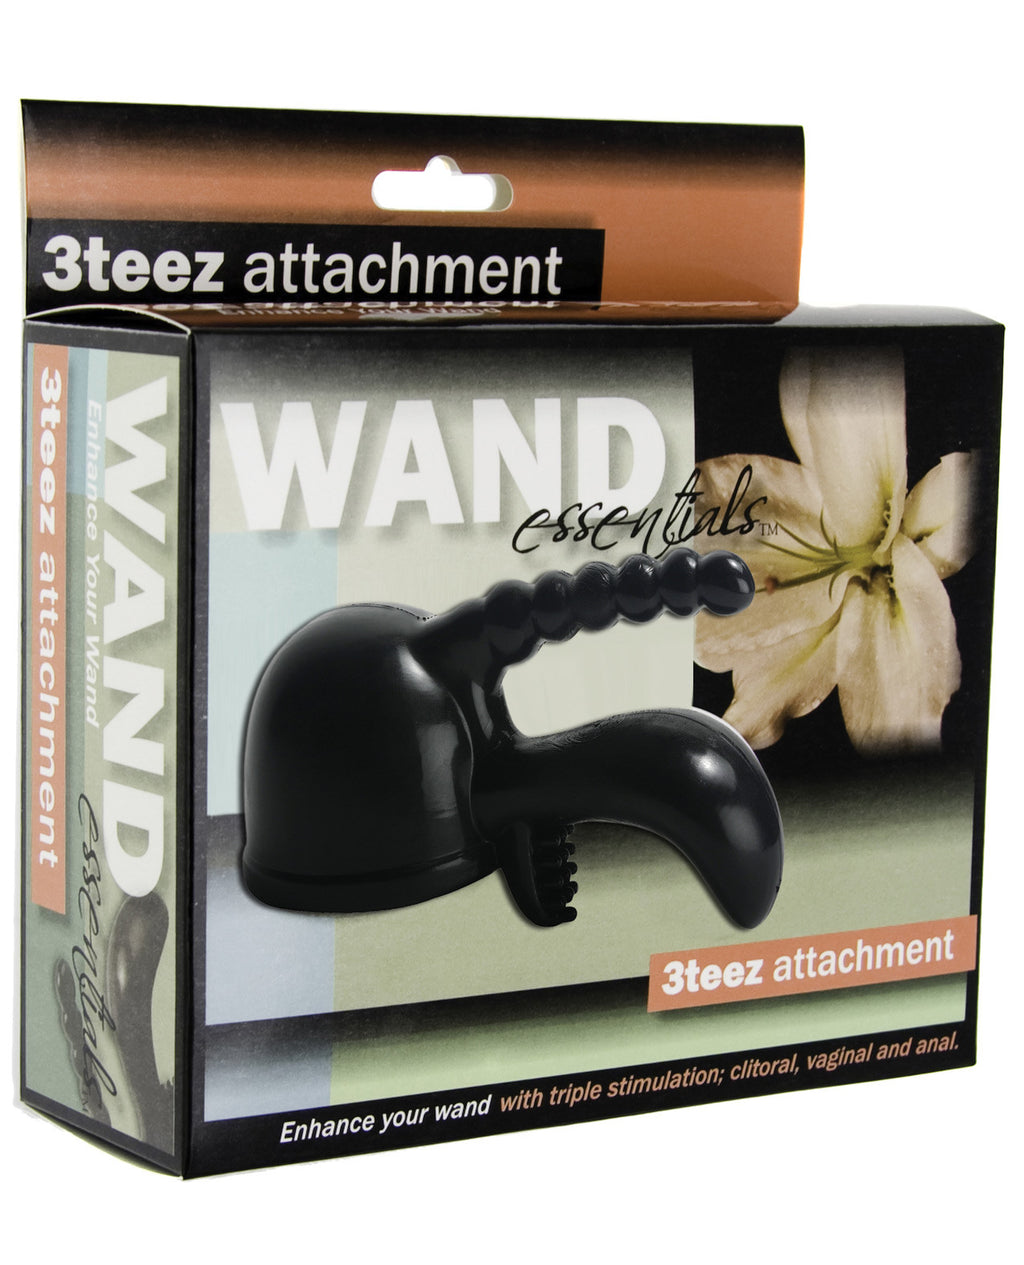 Wand Essentials 3 Teez Wand Attachment - Black, Massage Products - The Fallen Angel